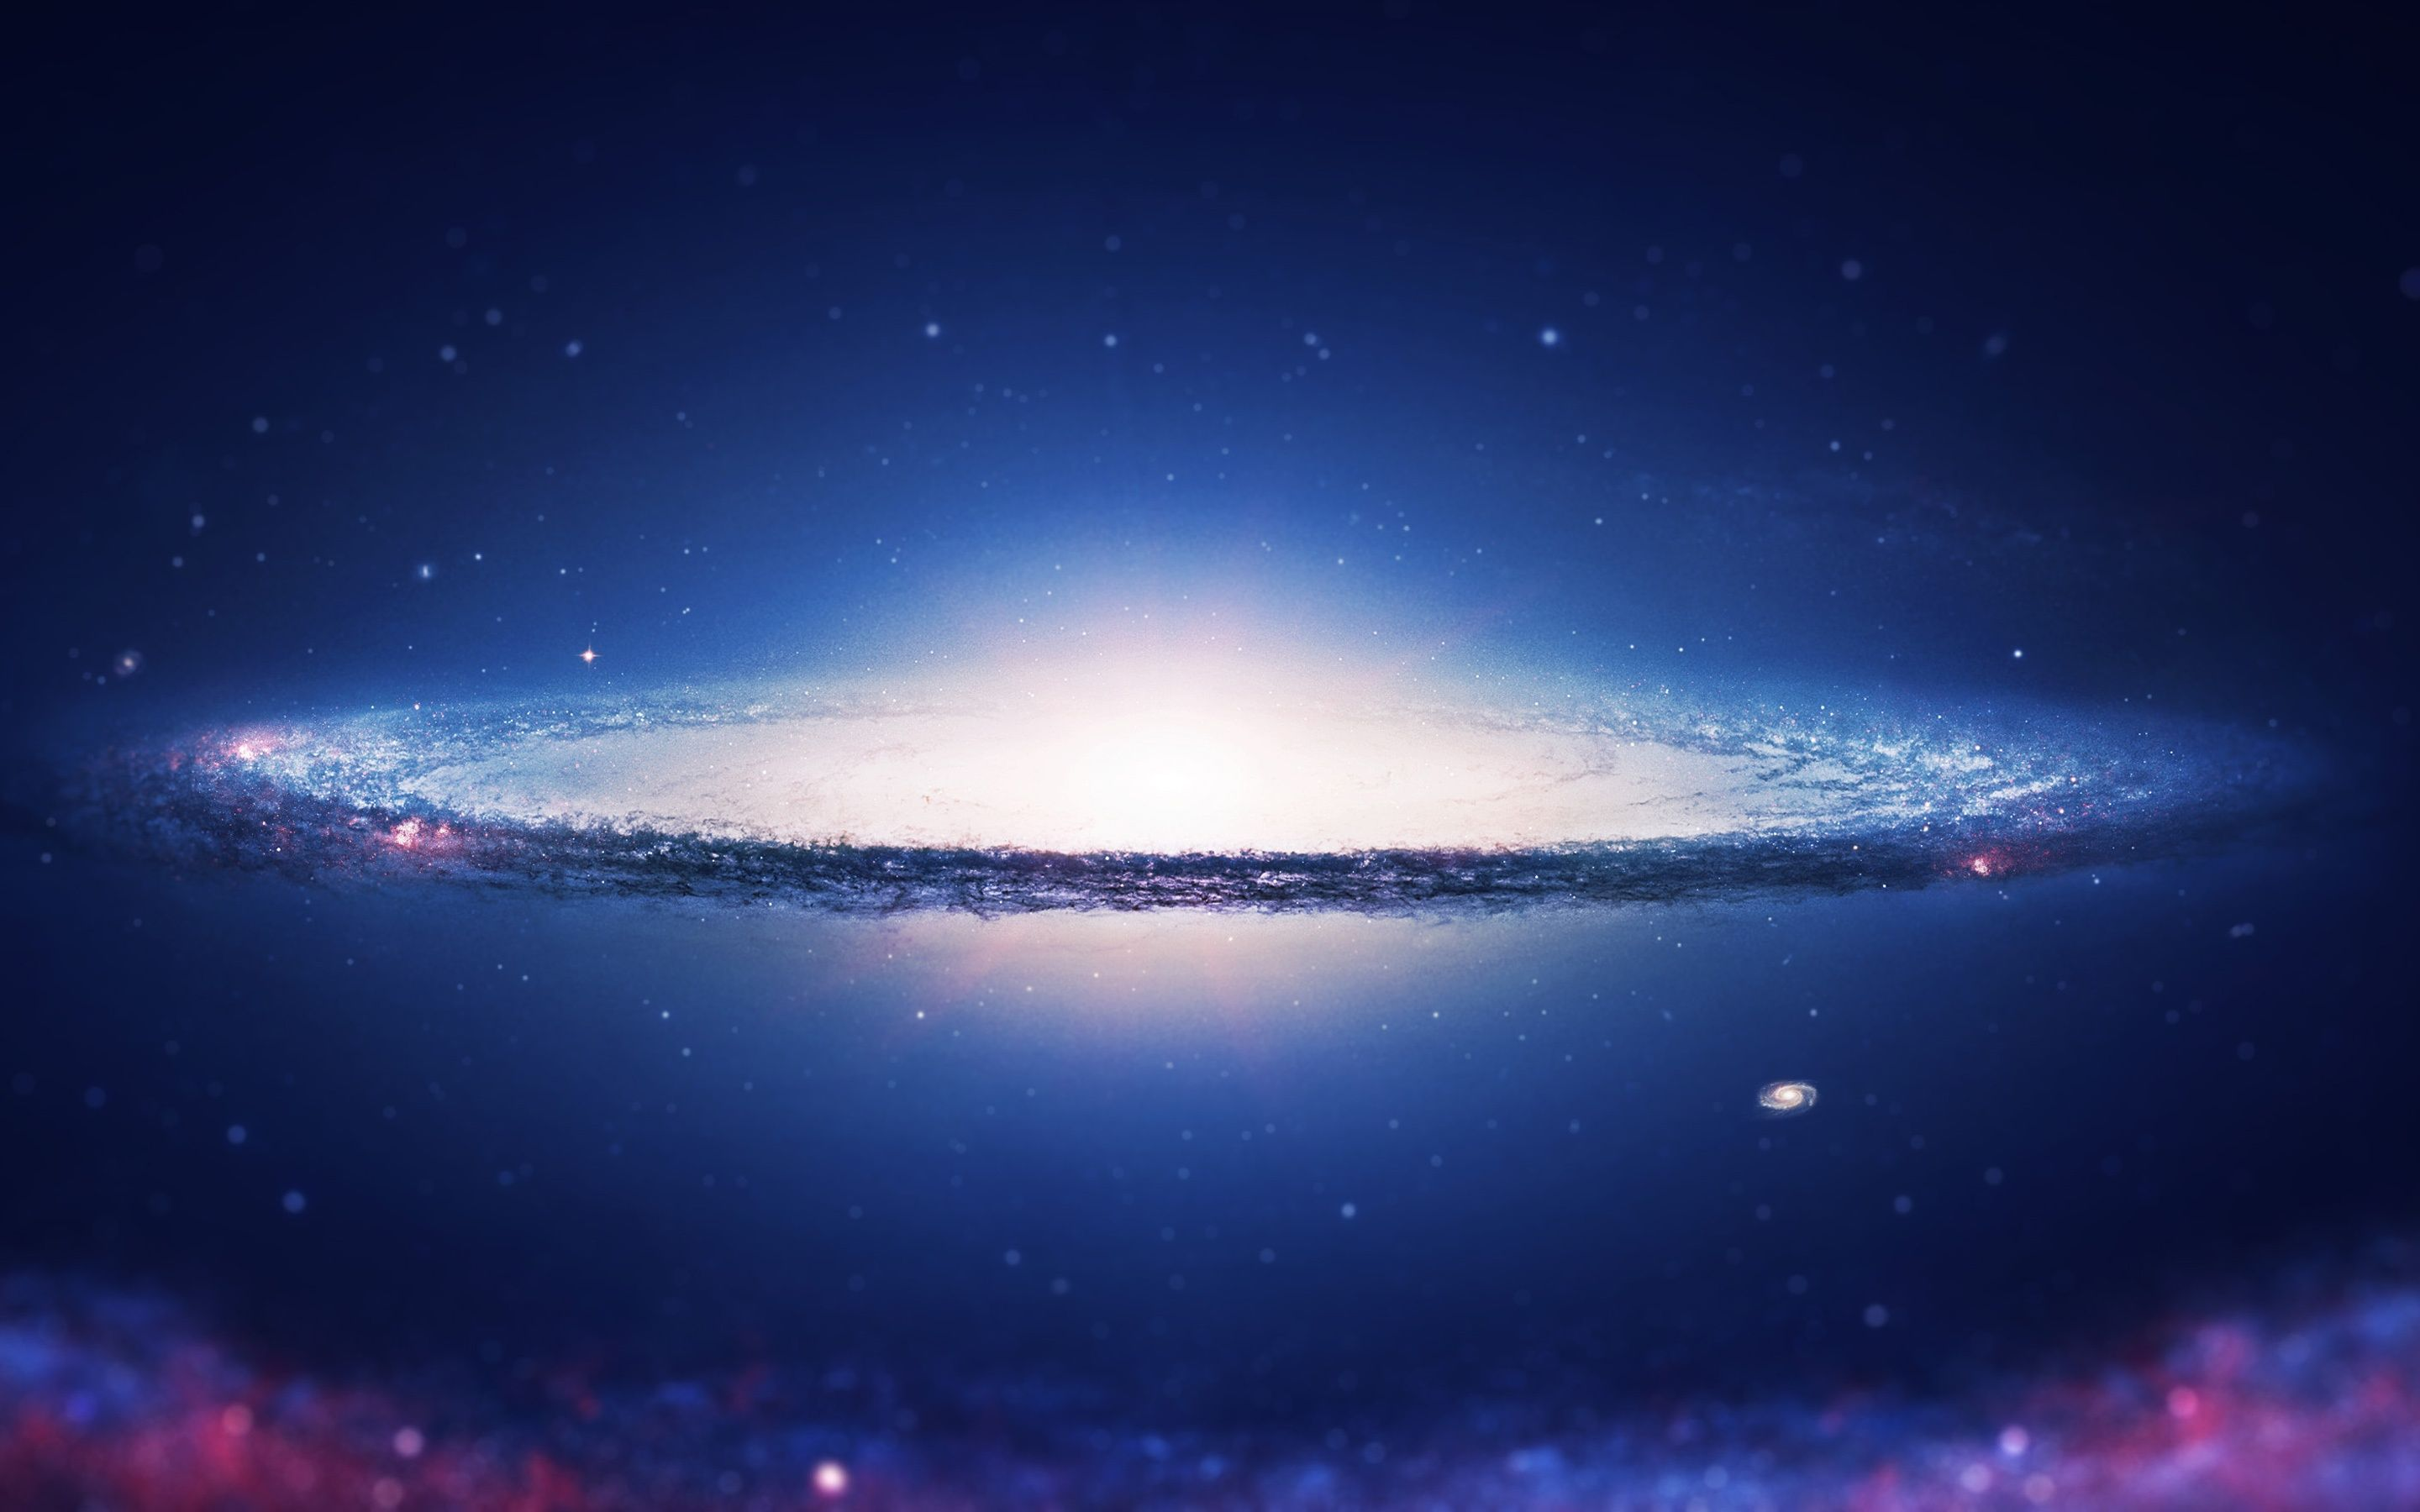 universe desktop wallpaper 4k-#9